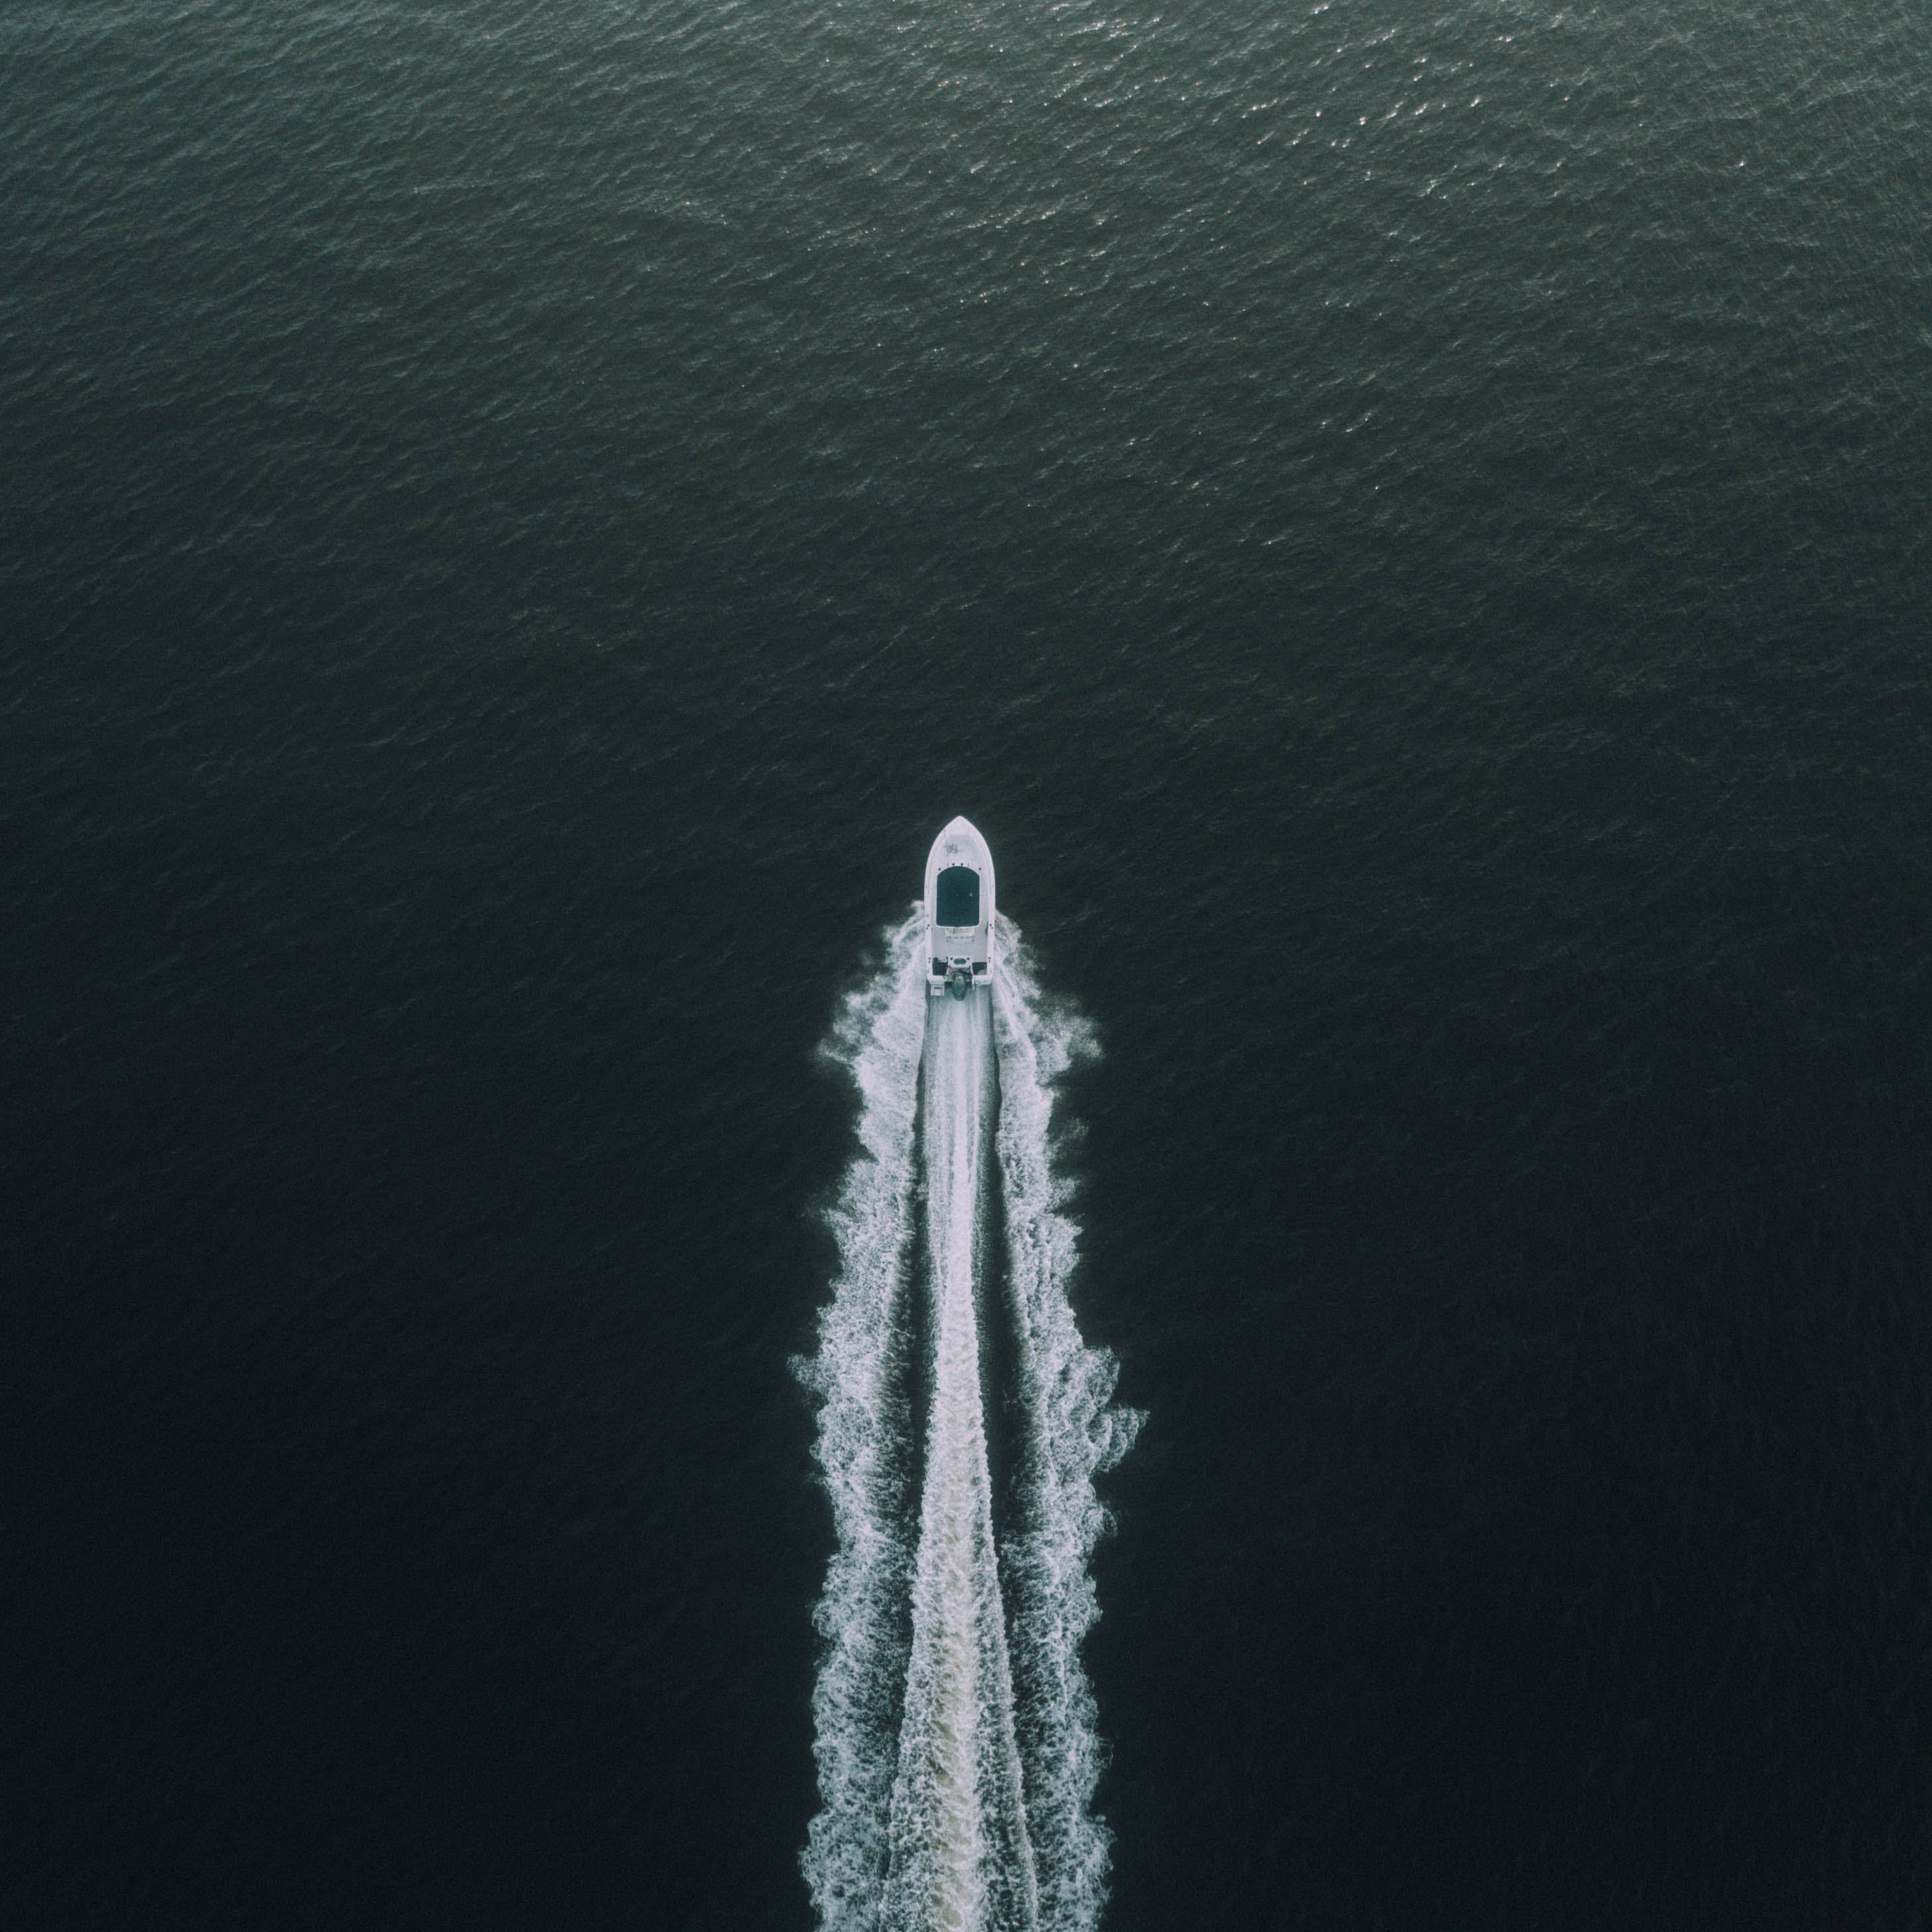 Bird's-eye Photography of Boat